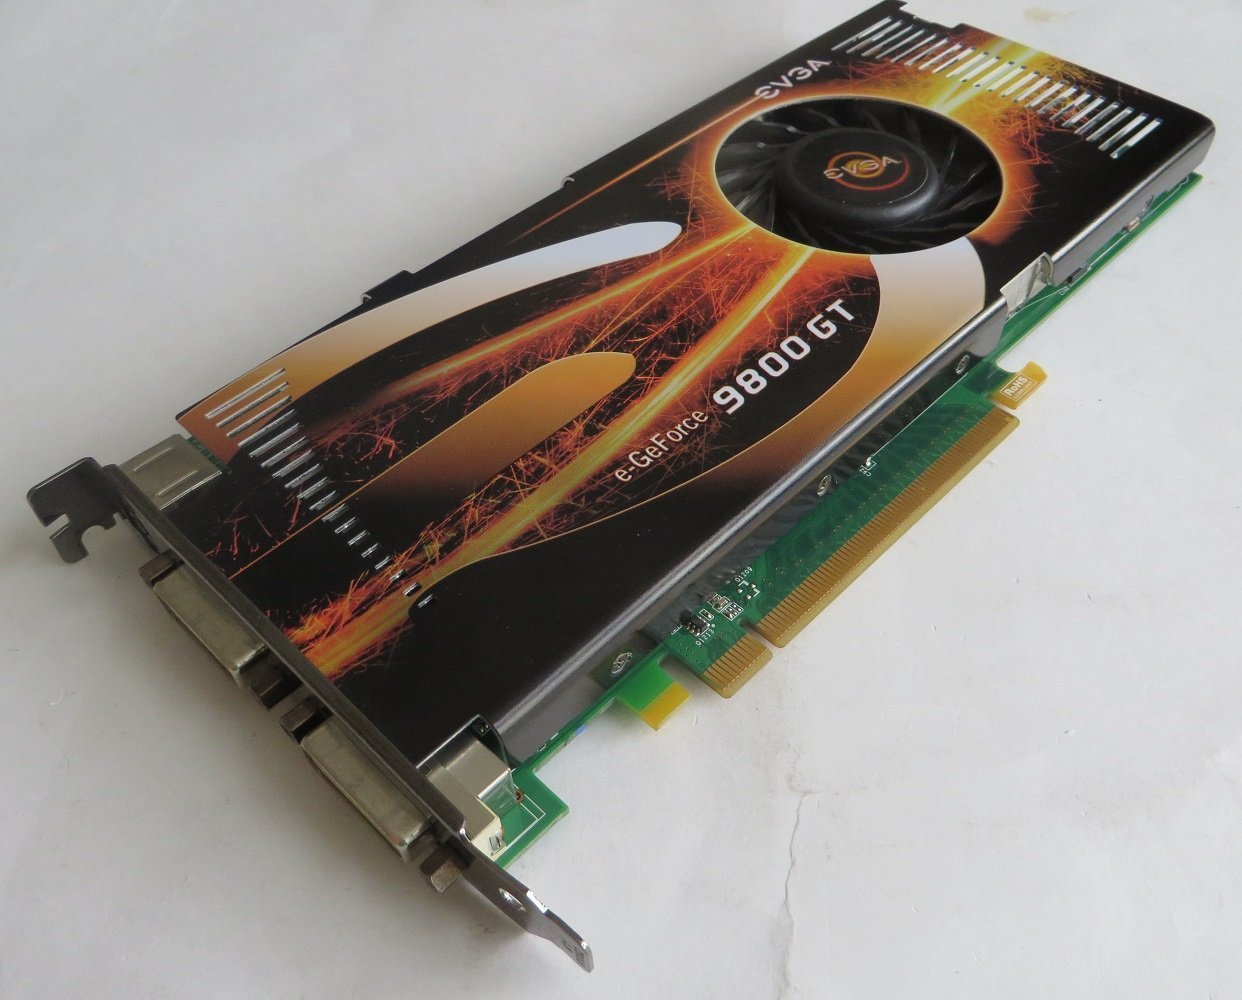 Get Quotations EVGA E GeForce 9800 GT 512MB PCI DDR3 Nvidia Video Graphics Card 512